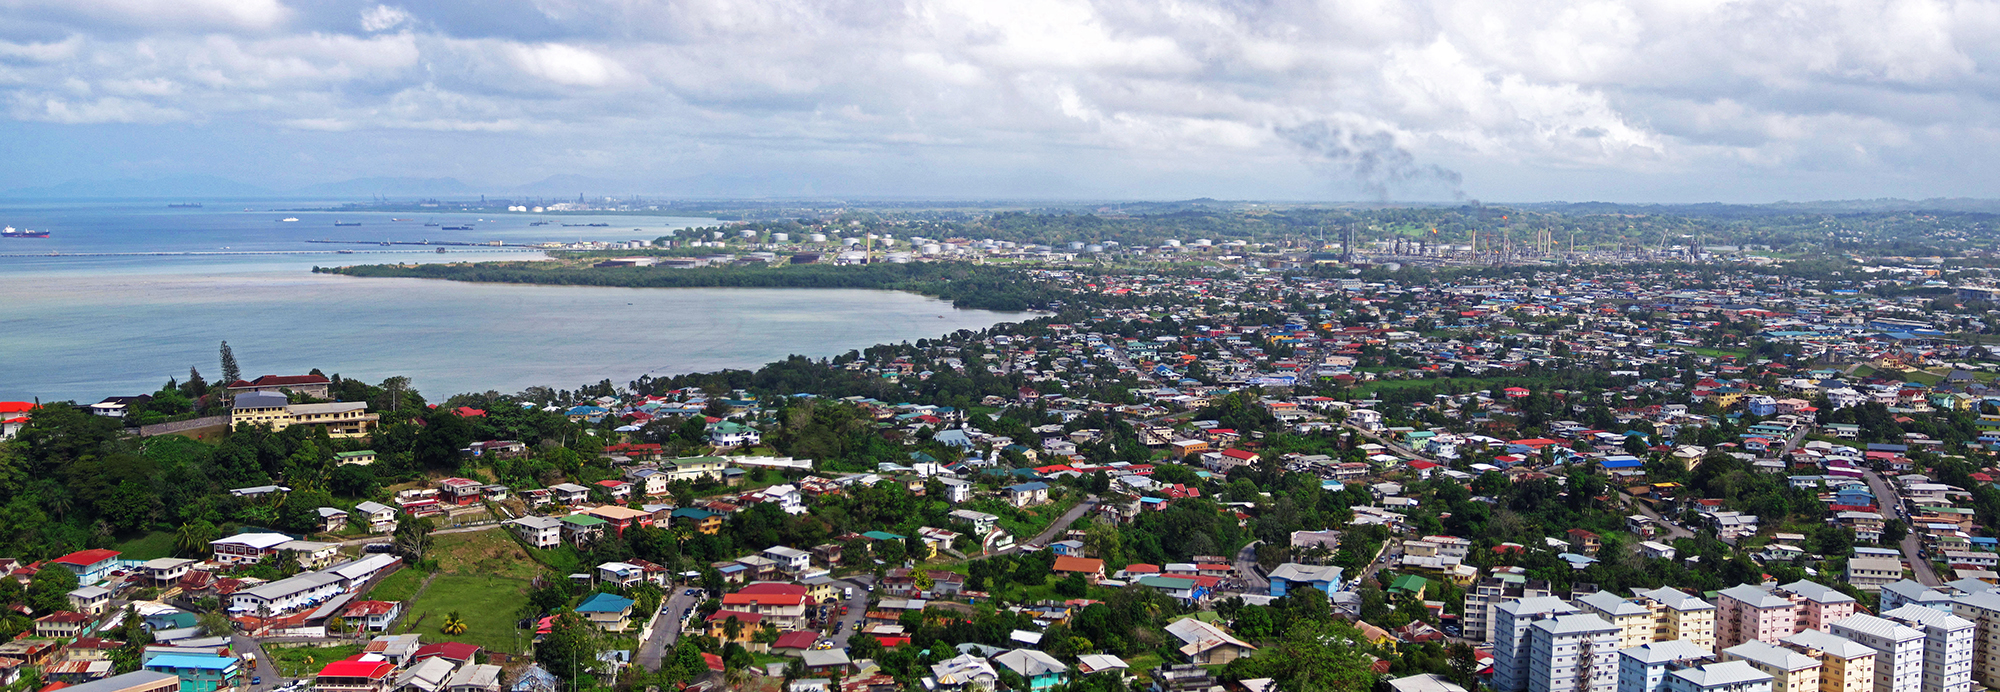 Photo of Trinidad coastline and industrial plant